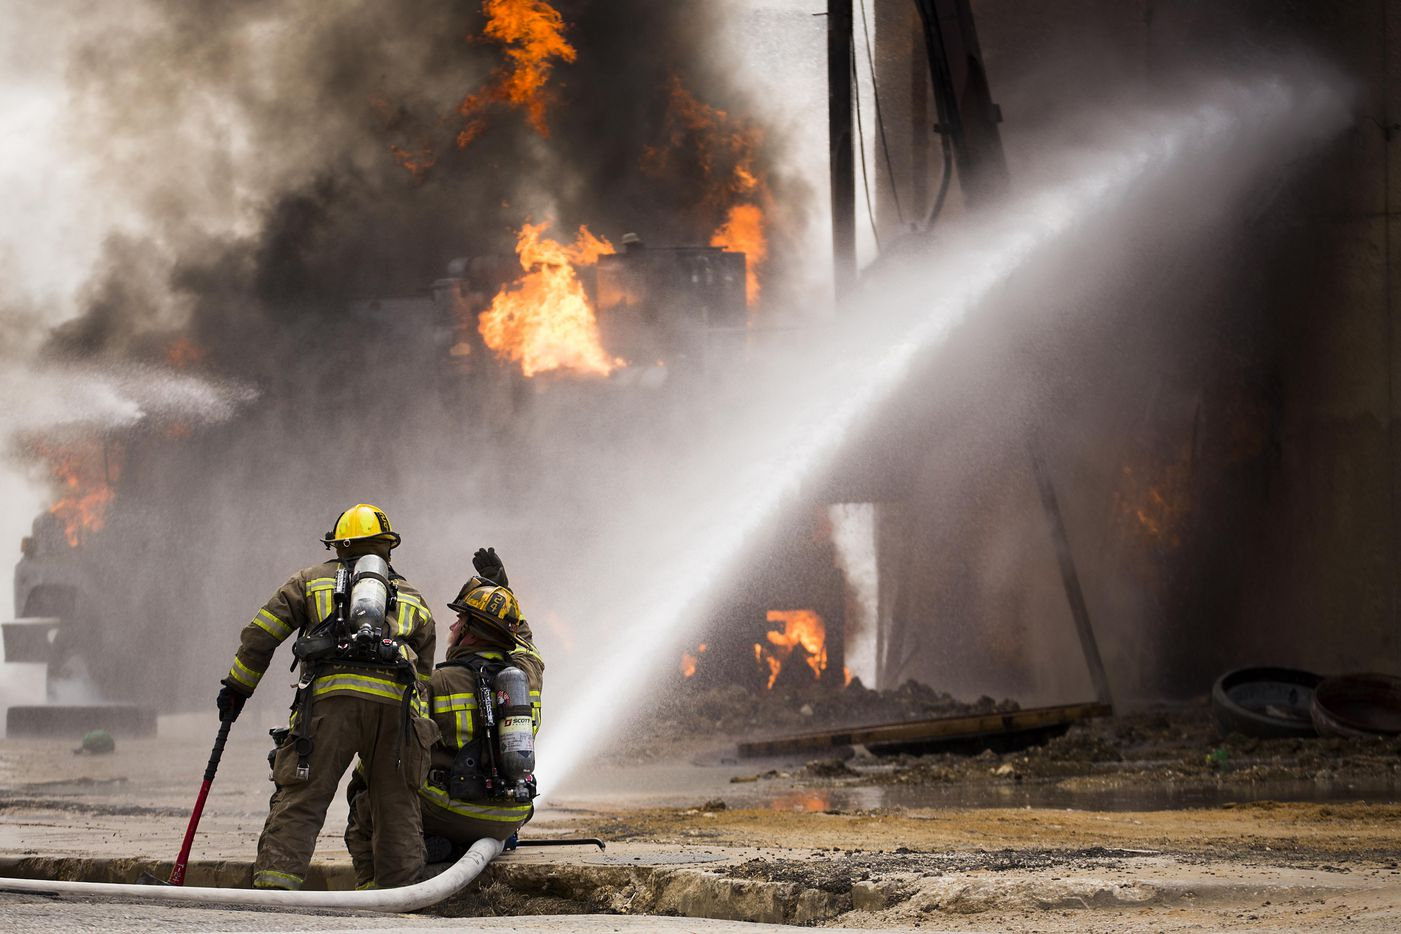 Dallas Fire-Rescue responds to the scene of a fire in the 2100 block of Main Street where an unspecified company struck a gas line on Friday, March 10, 2017, in Dallas.